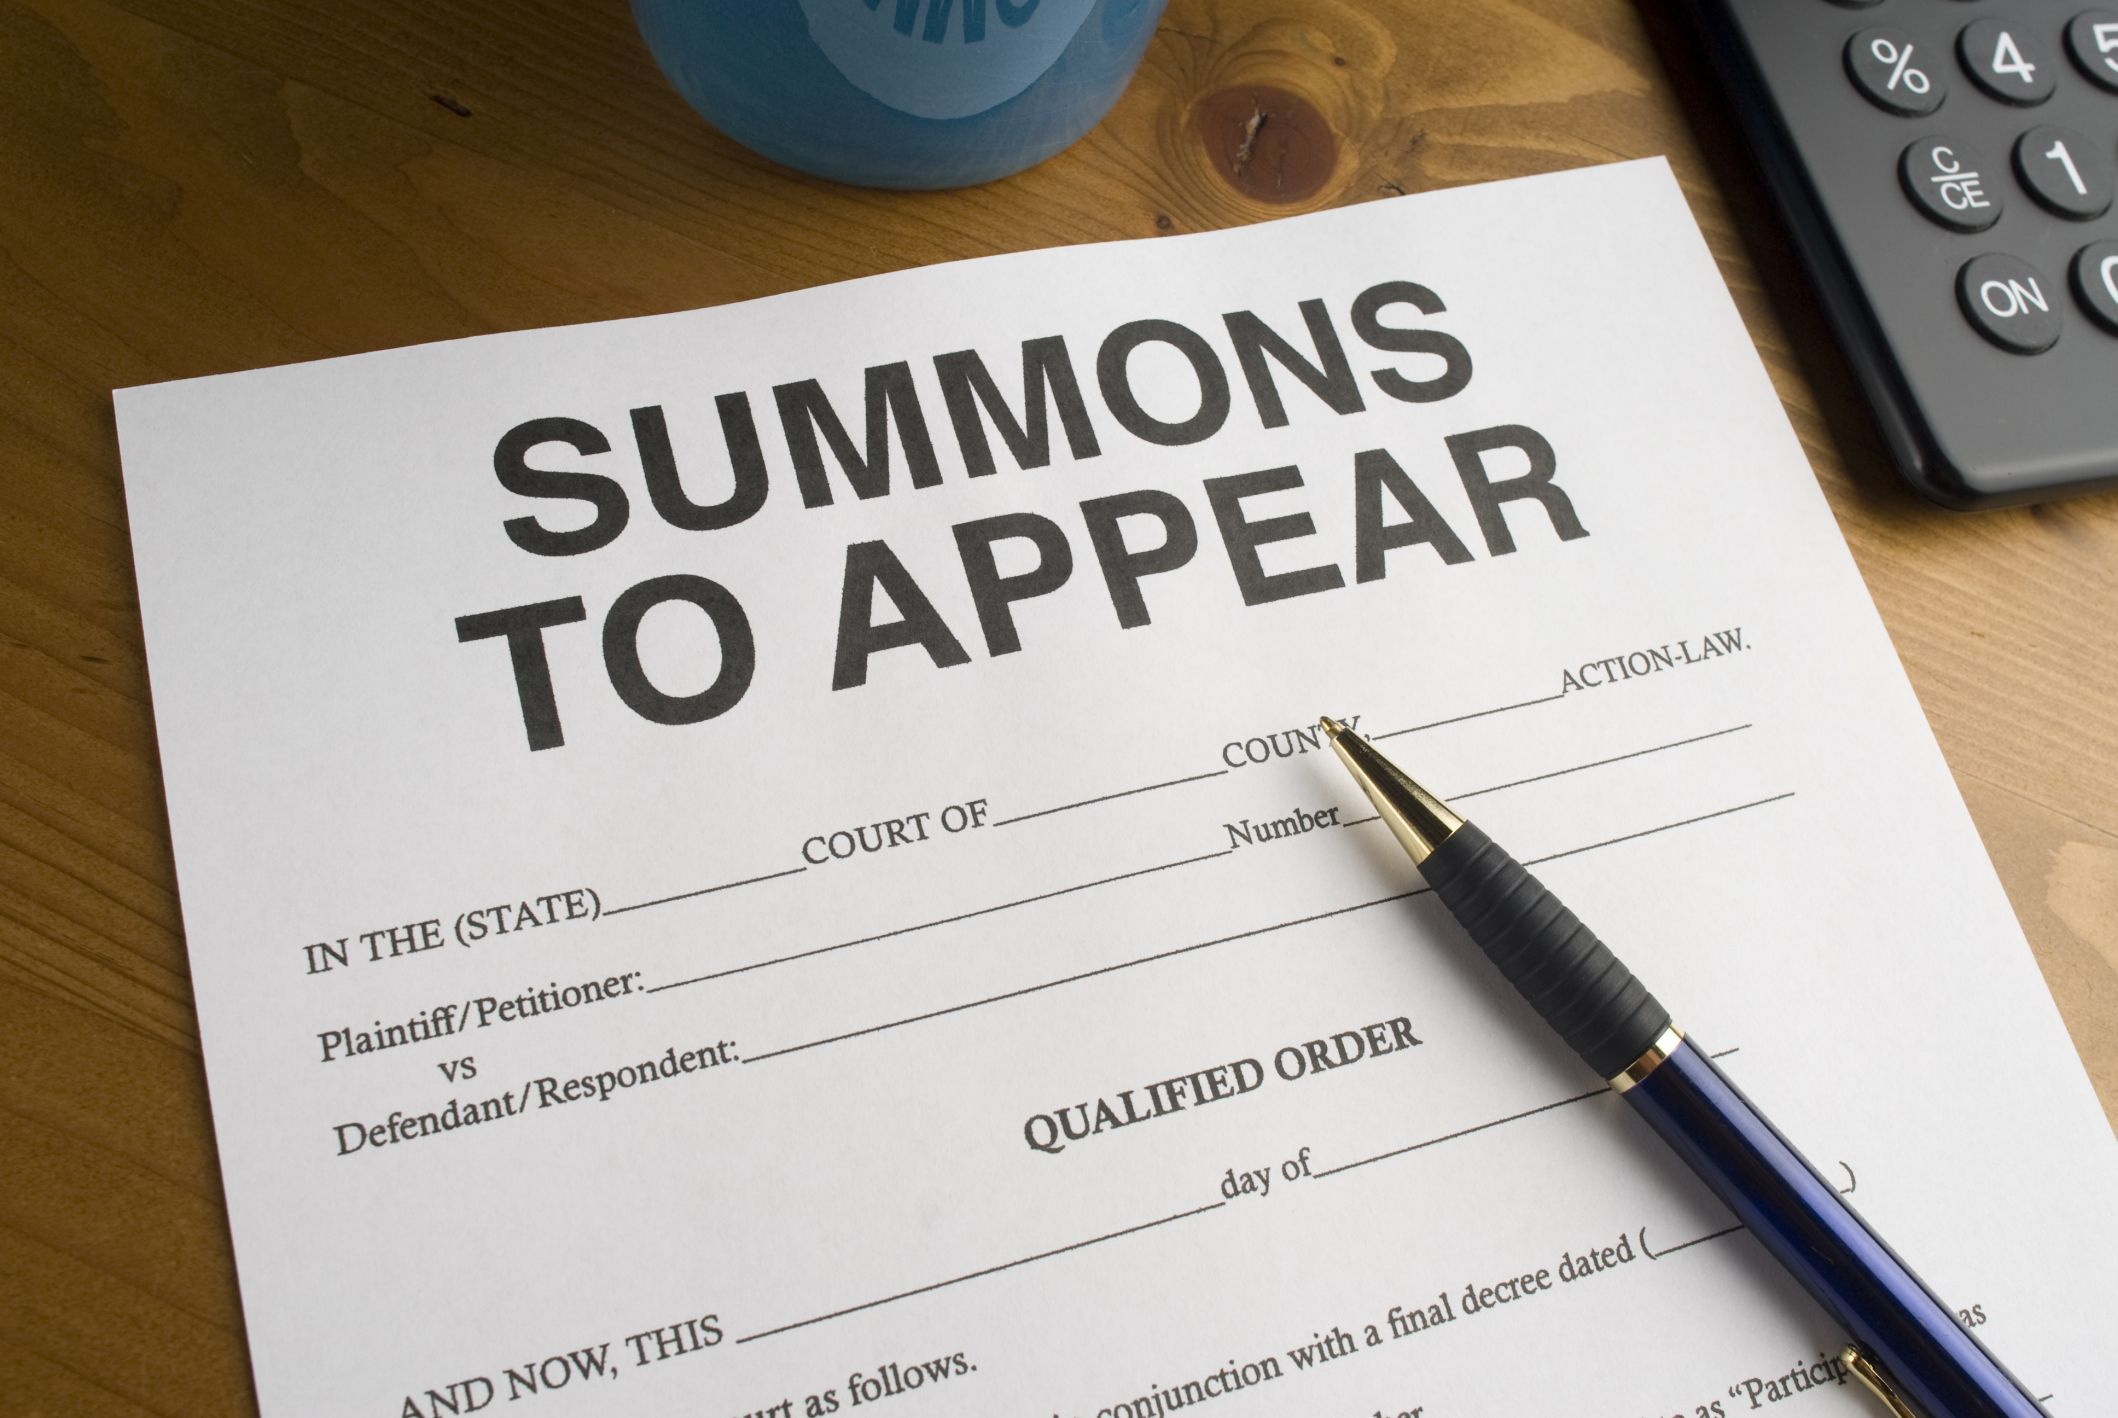 how-to-dismiss-a-summons-to-appear-in-court.jpg